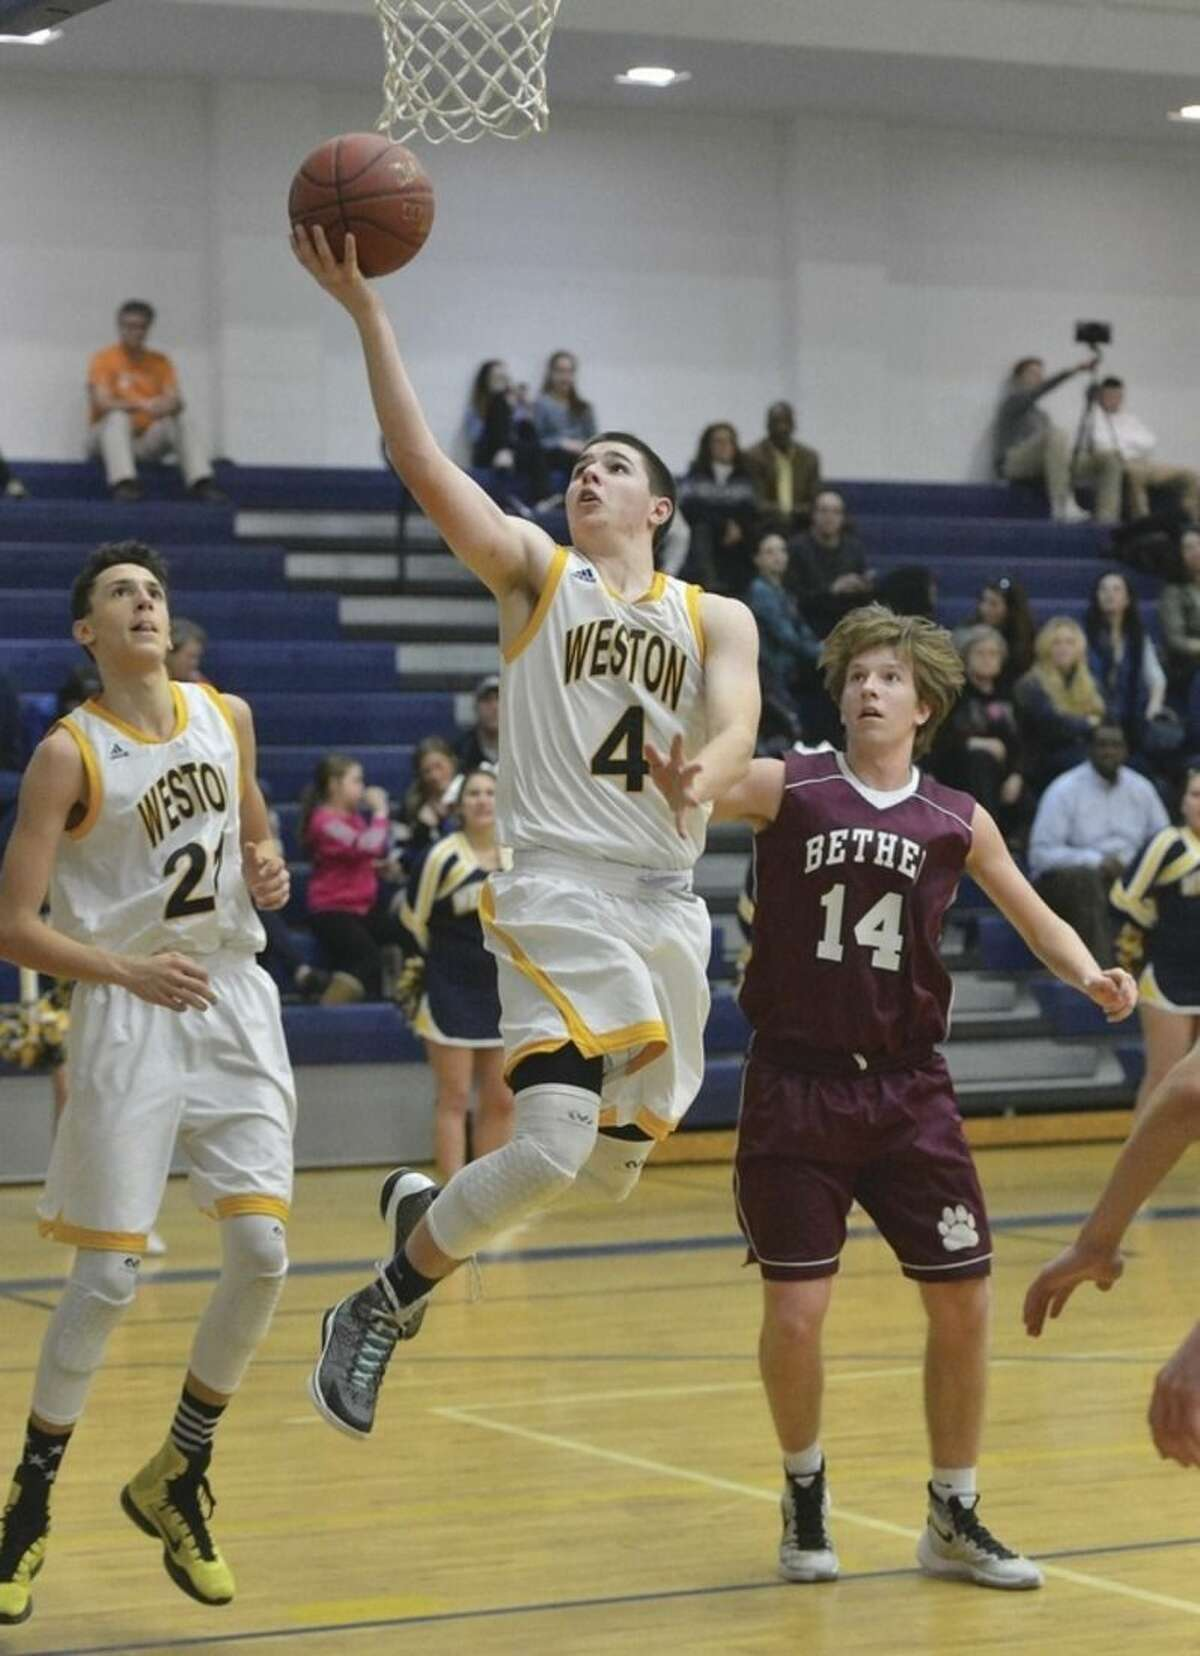 Hour photo/Alex von Kleydorff Weston's Andrew Folger (4) puts the ball in the hoop during Tuesday night's SWC encounter against Bethel.